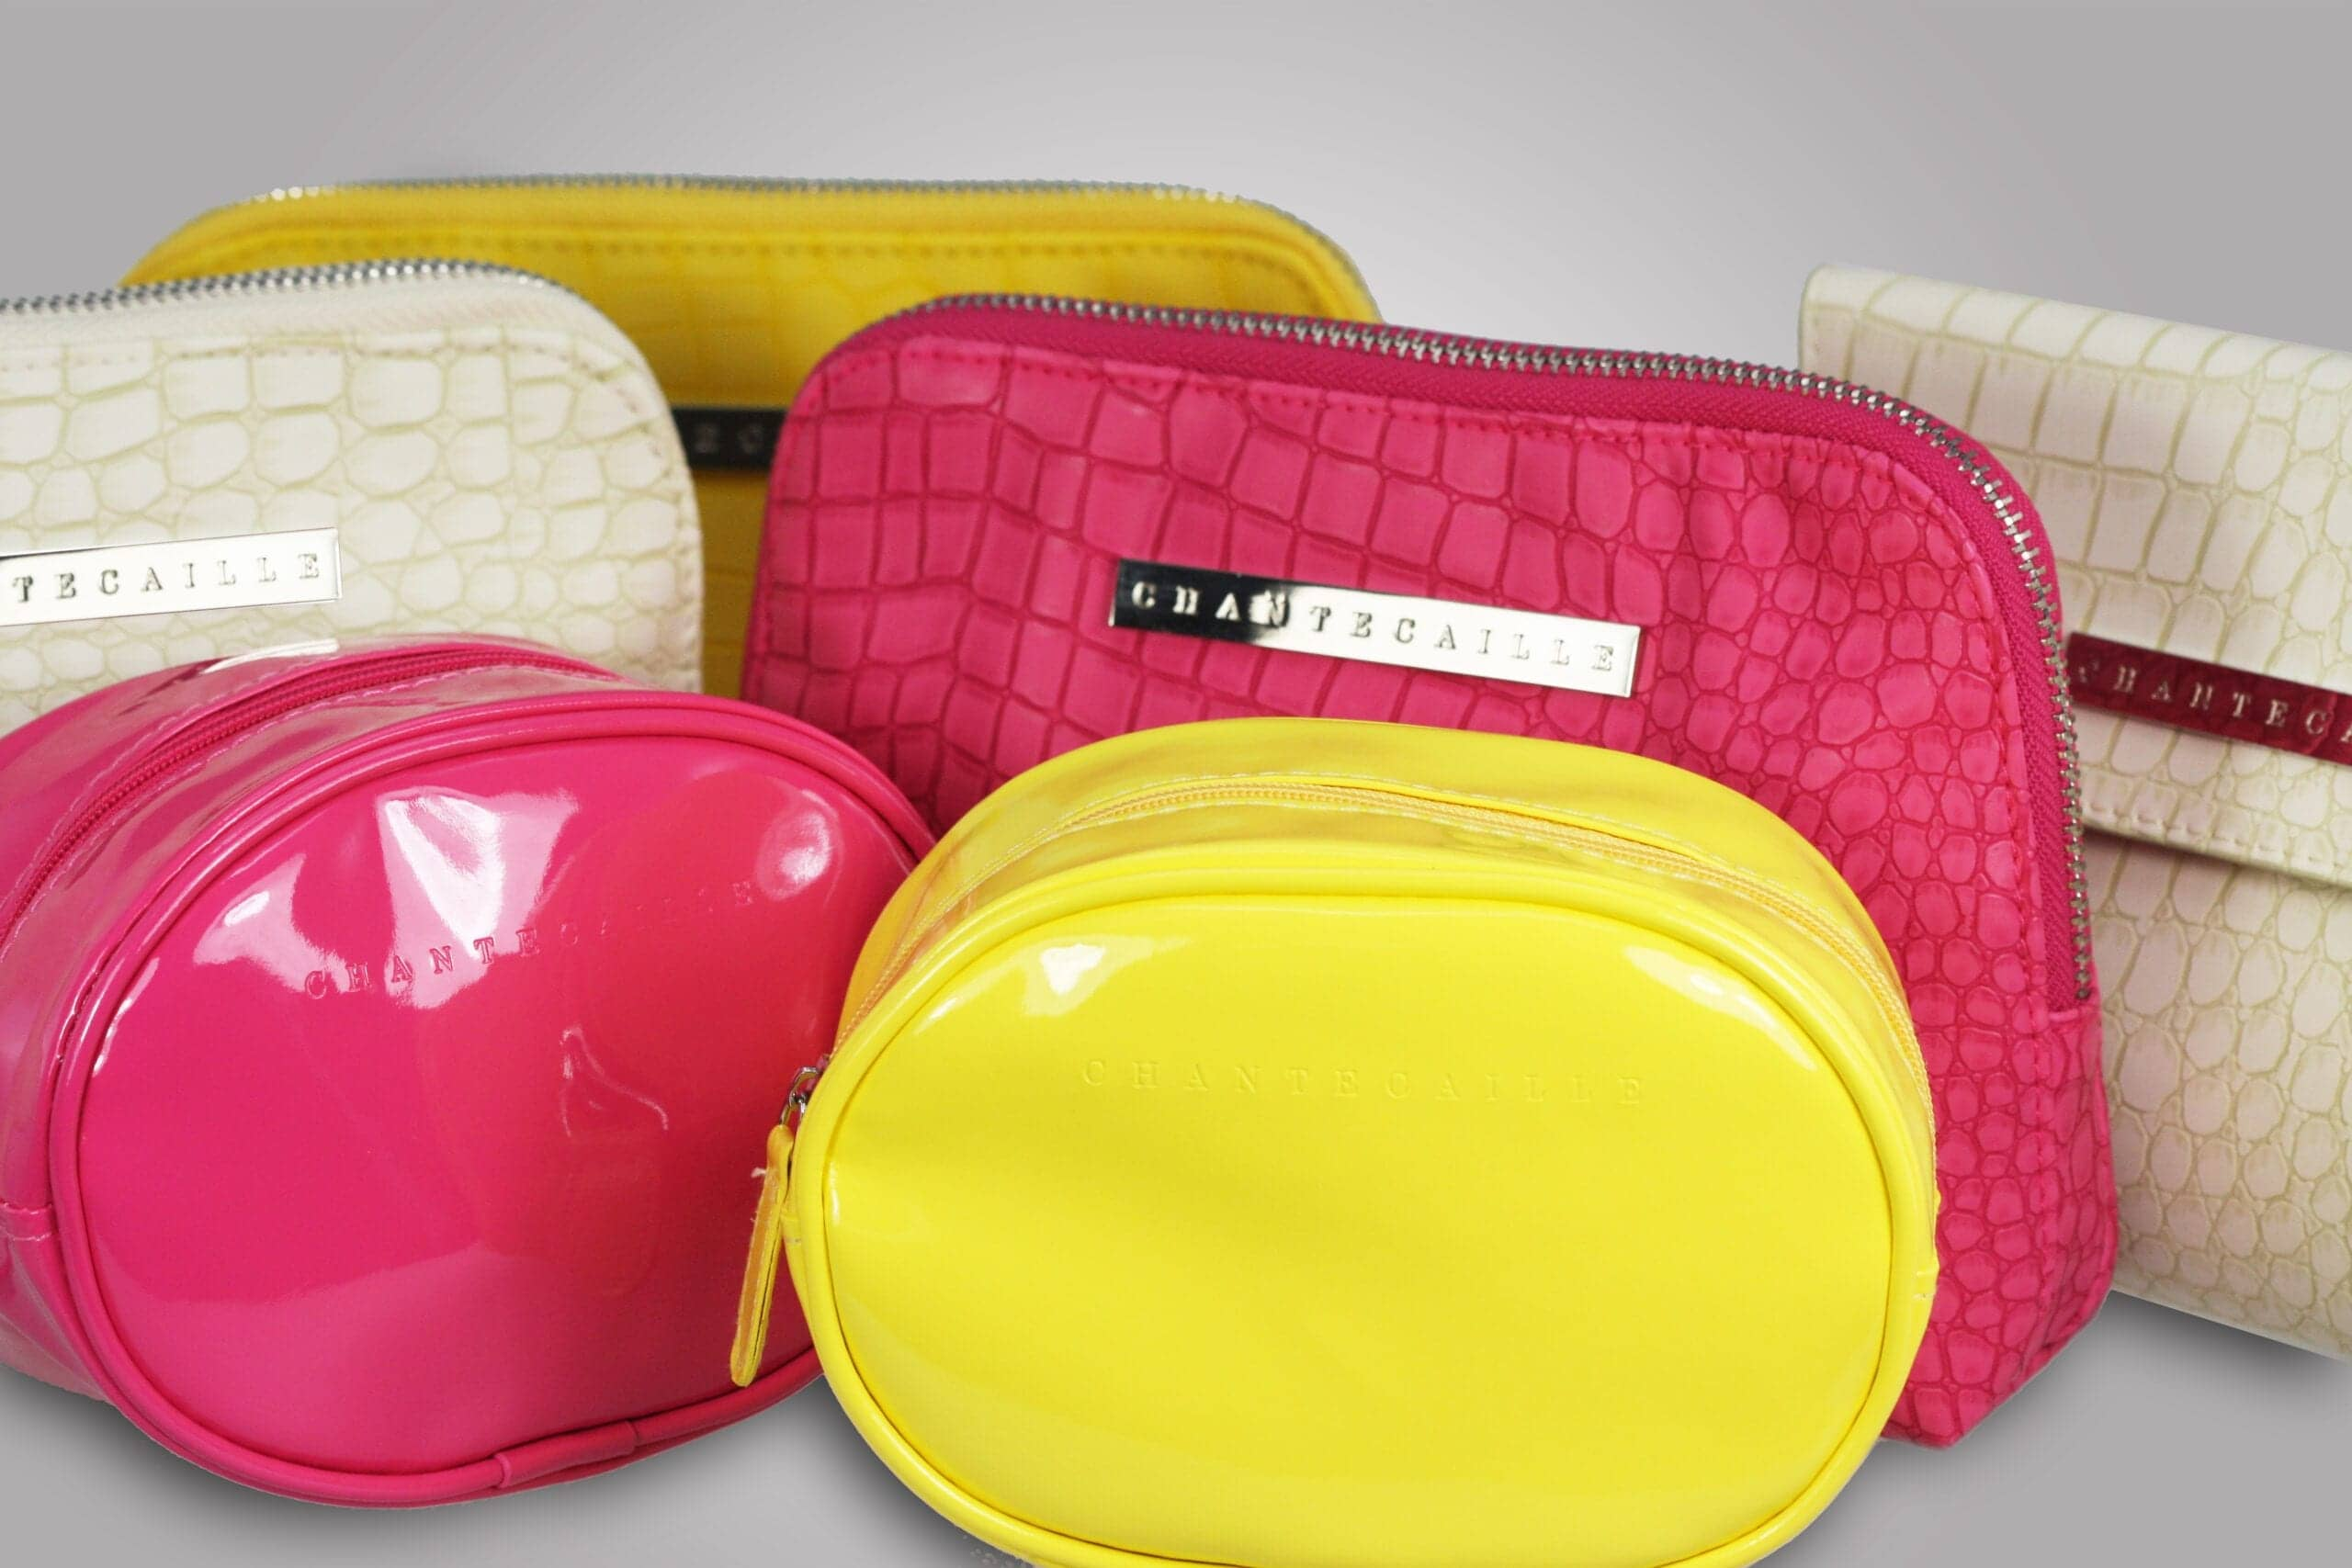 Promotional gifts also known as premiums, are a popular marketing tool to attract and maintain customers. PPD&G can custom make and manufacture any piece to fit your brand, like these colorful custom cosmetic cases.